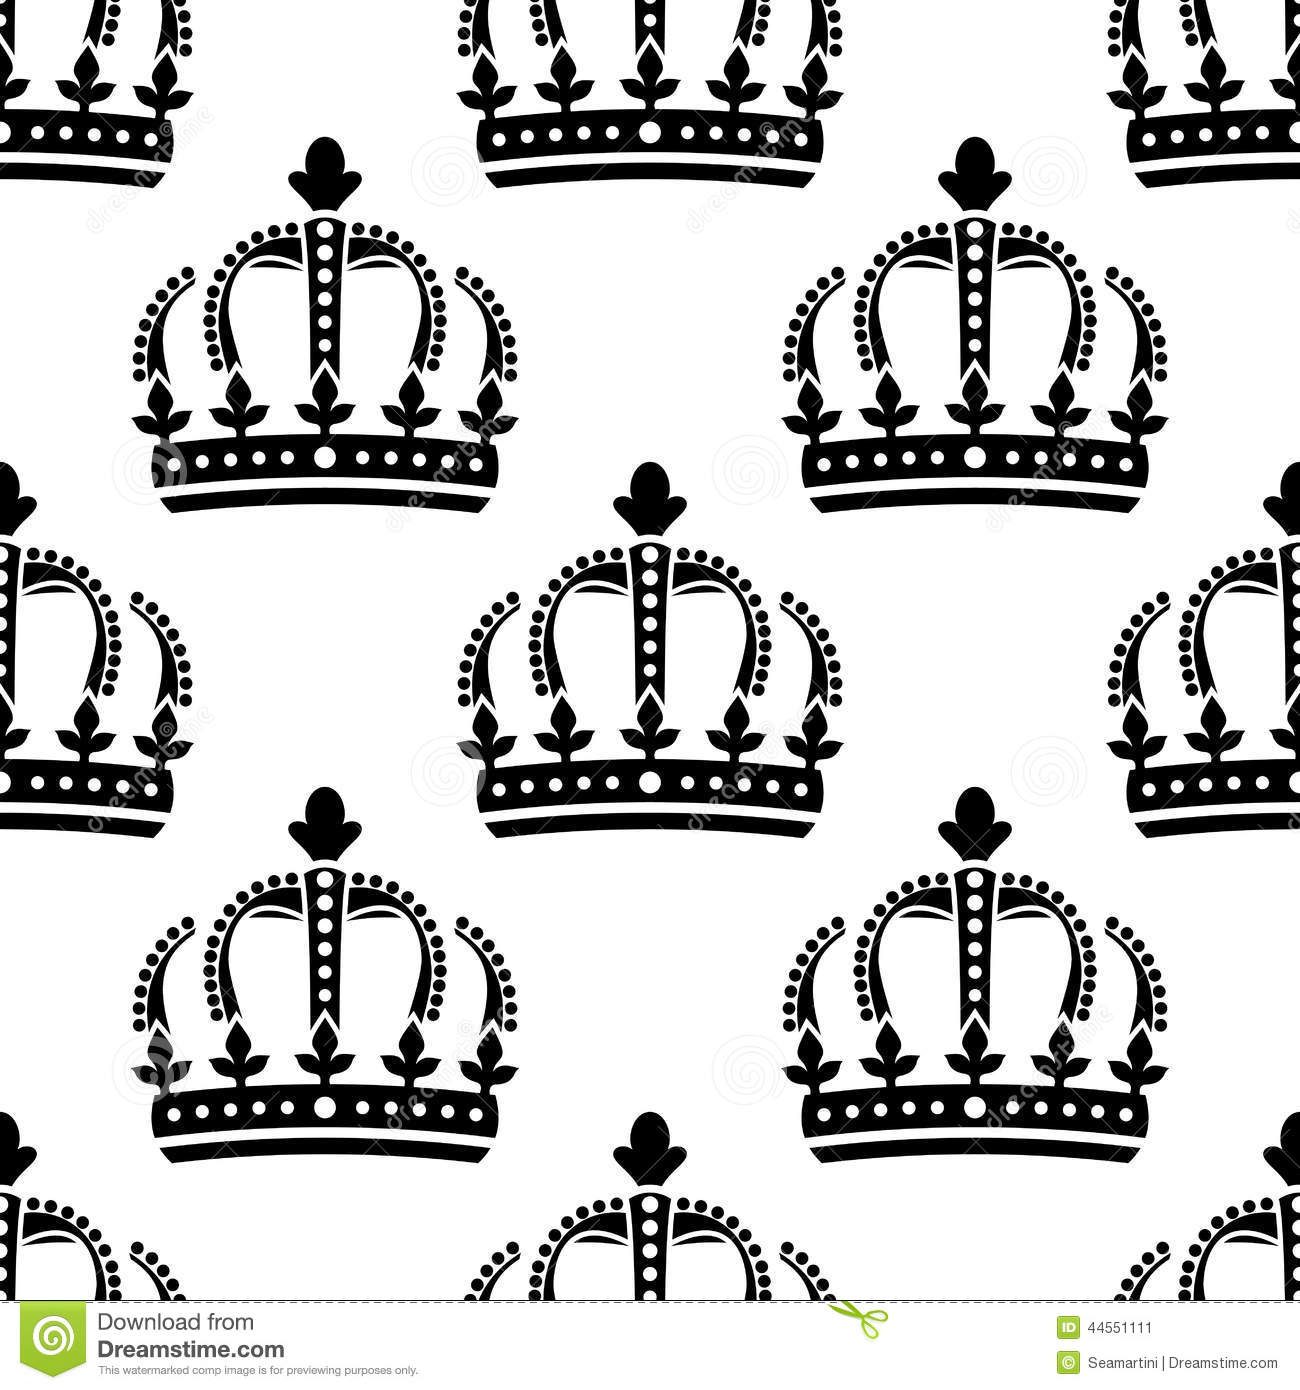 Crowns And Tiaras Wallpaper